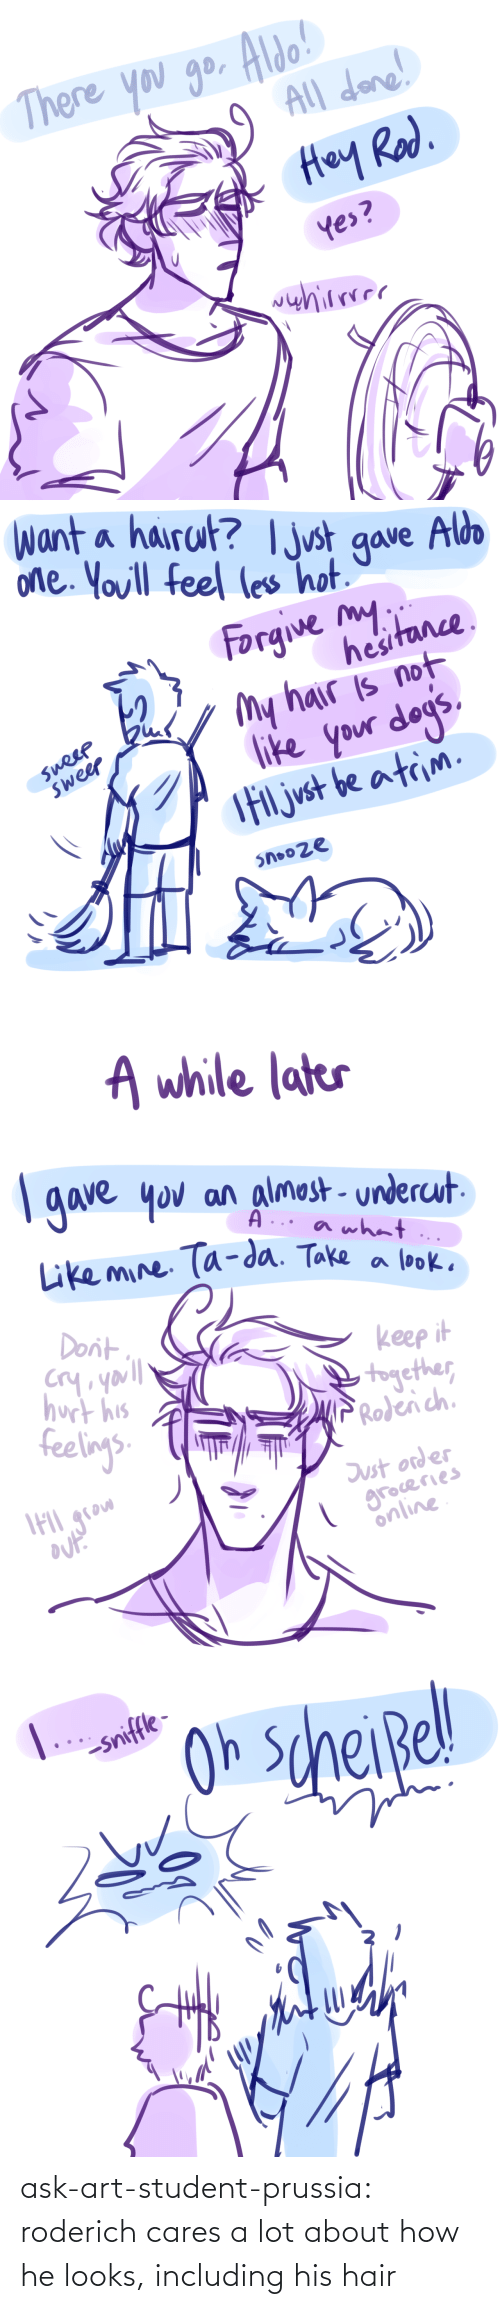 A Lot: ask-art-student-prussia:  roderich cares a lot about how he looks, including his hair